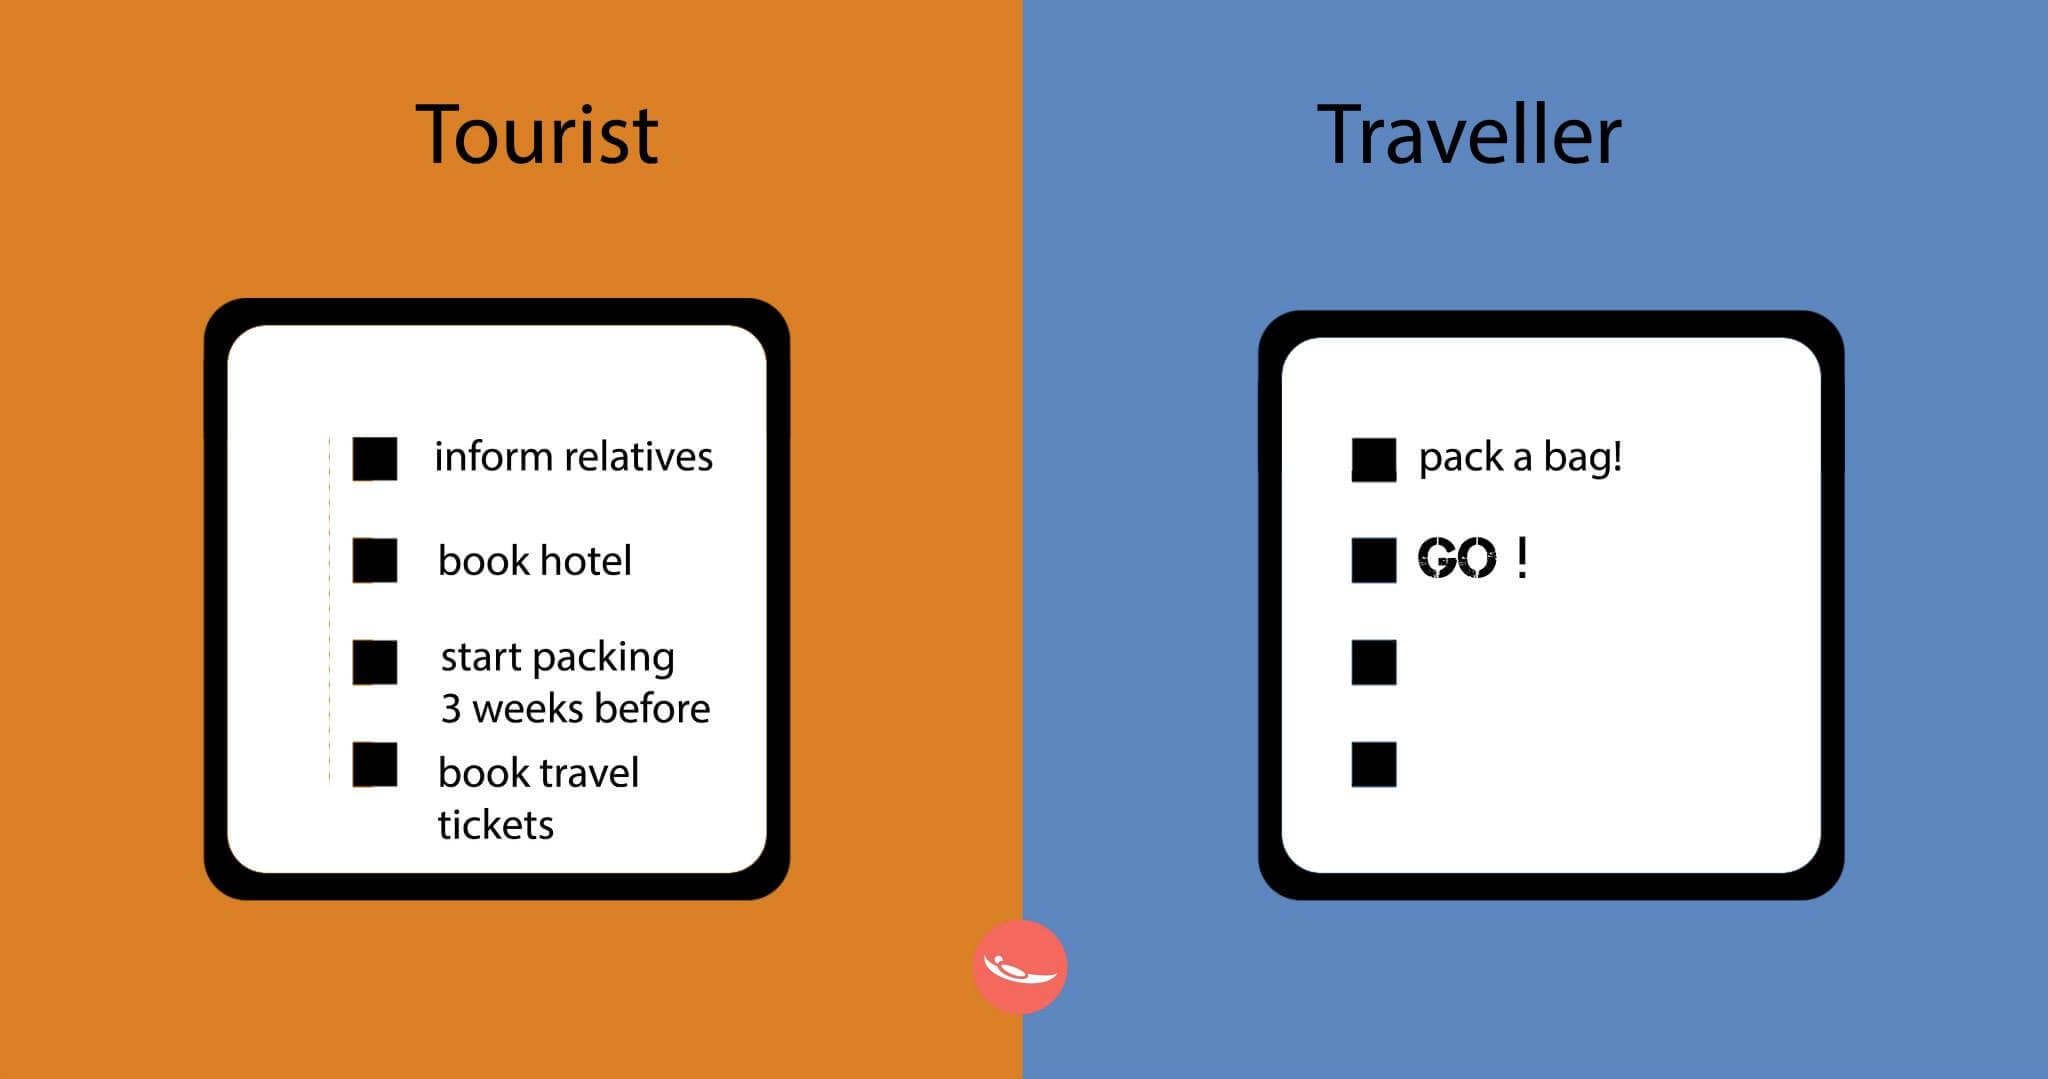 tourist-vs-traveller-freeyork-6